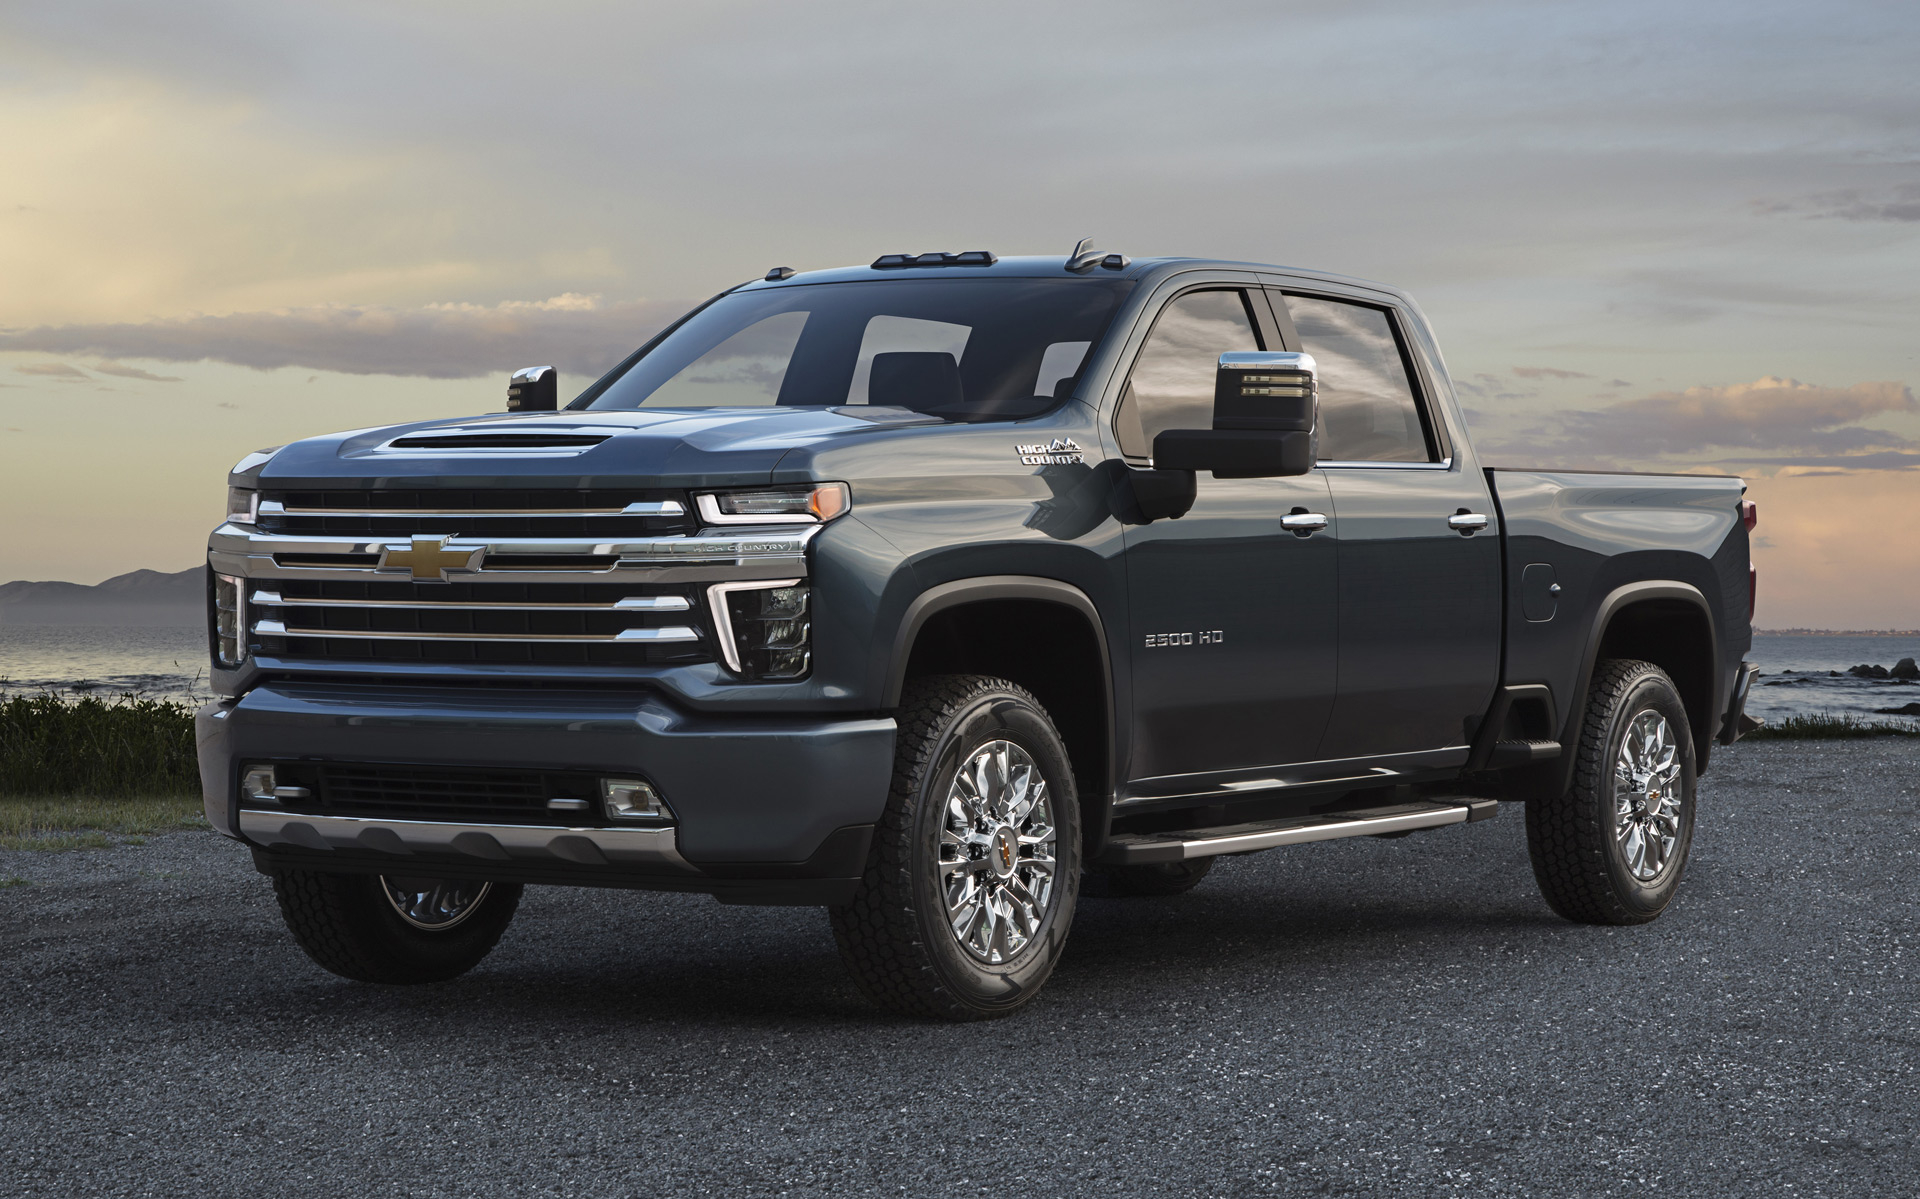 2020 Chevy Silverado 2500Hd High Country: More Bling, Less Butch 2021 Chevrolet Silverado Colors, Pictures, Review